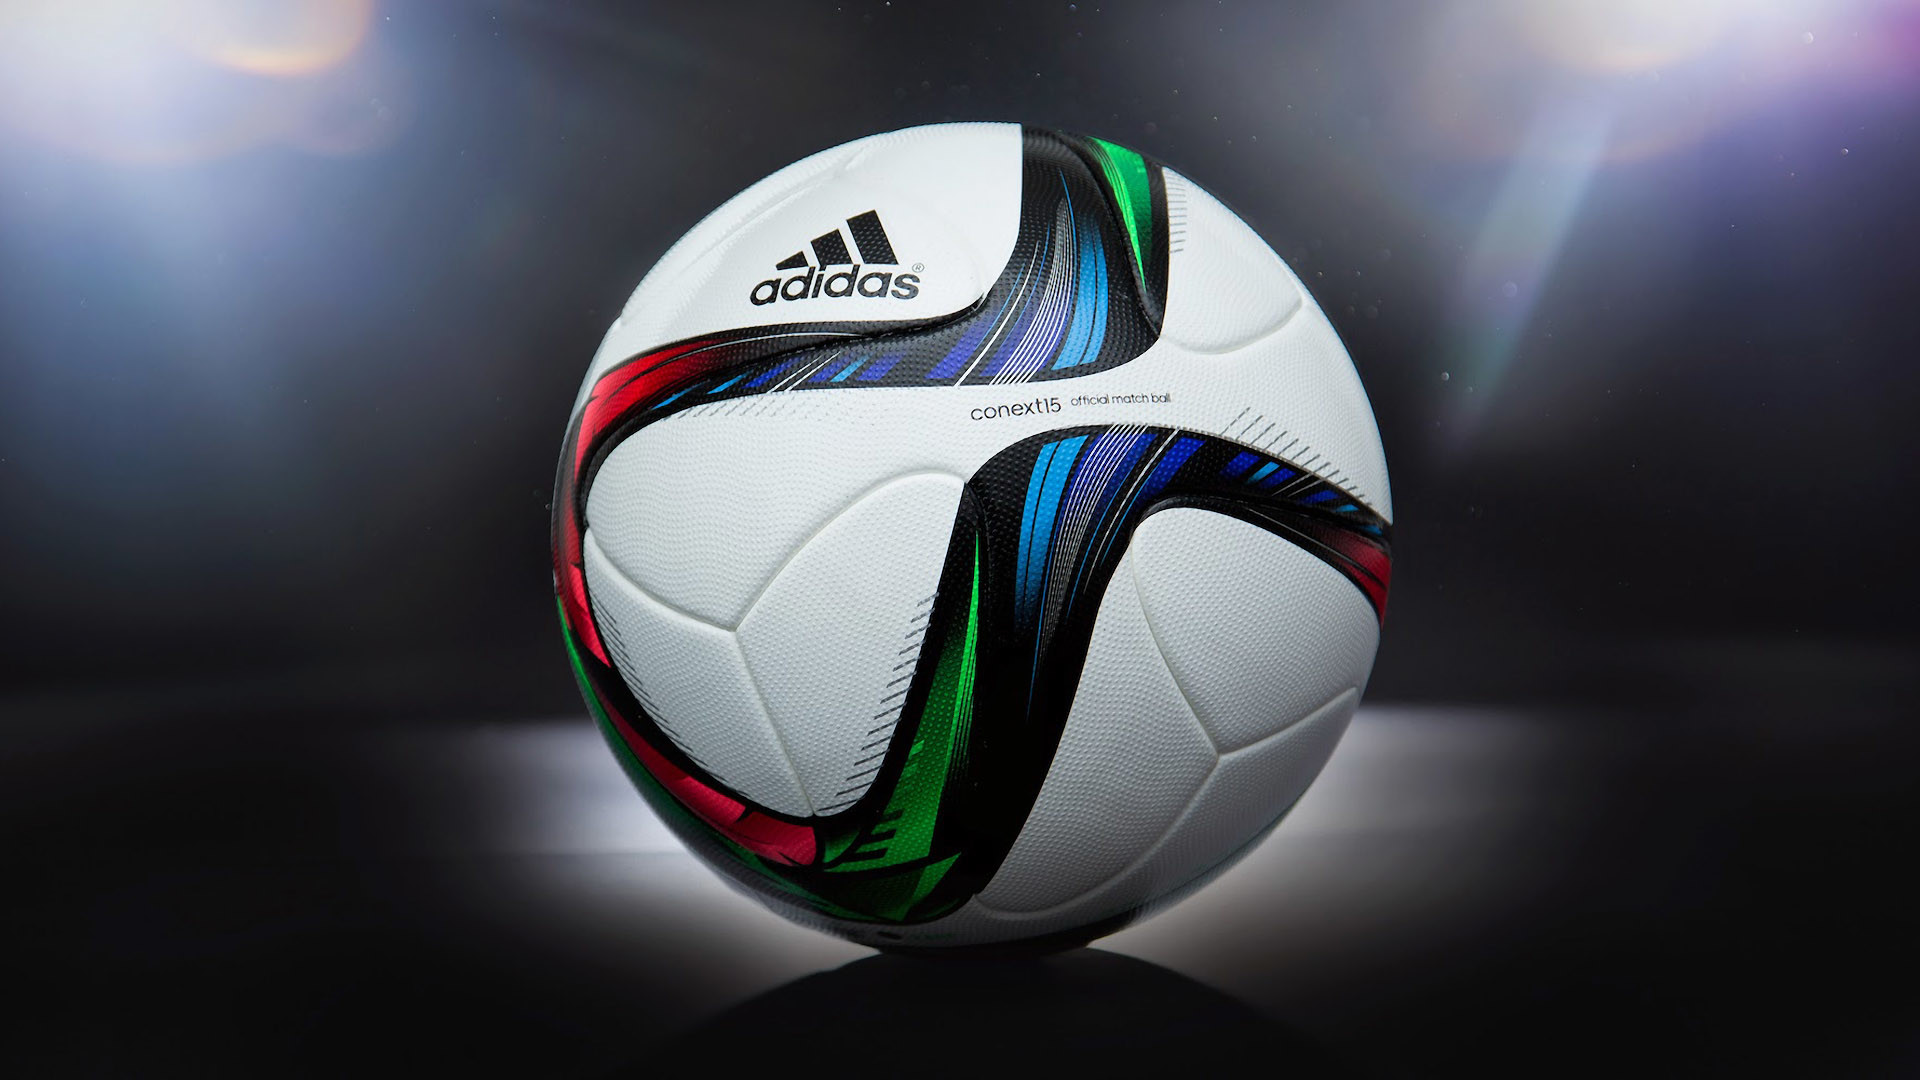 1920x1080 adidas conext soccer wallpaper desktop images download free windows  wallpapers amazing colourful 4k artwork lovely 1920